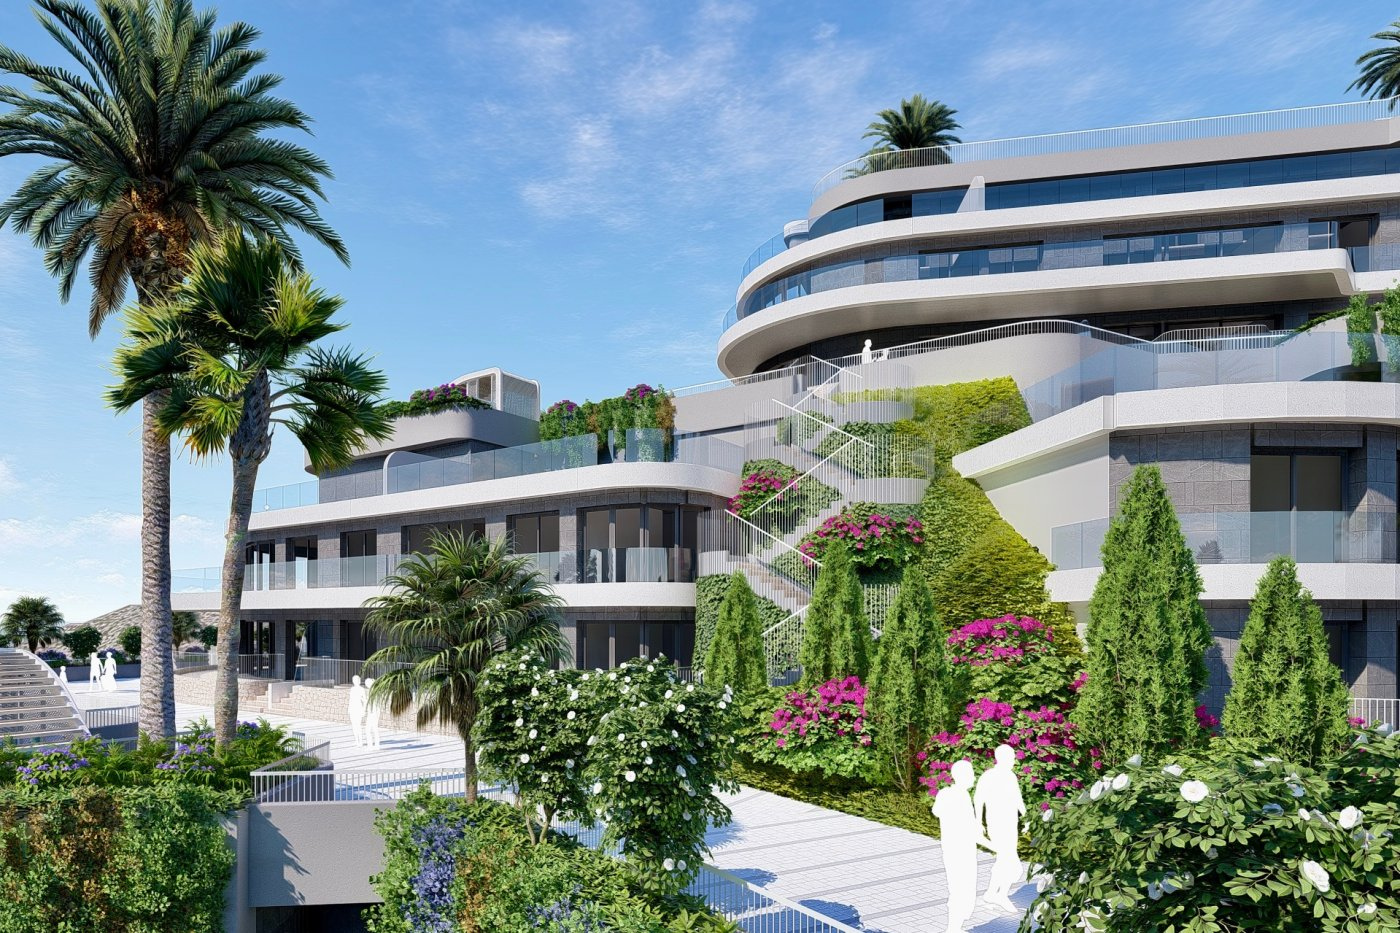 Gallery Image 5 of Phenomenal views, southwest facing 3 bed apartment with 66 m2 terrasse